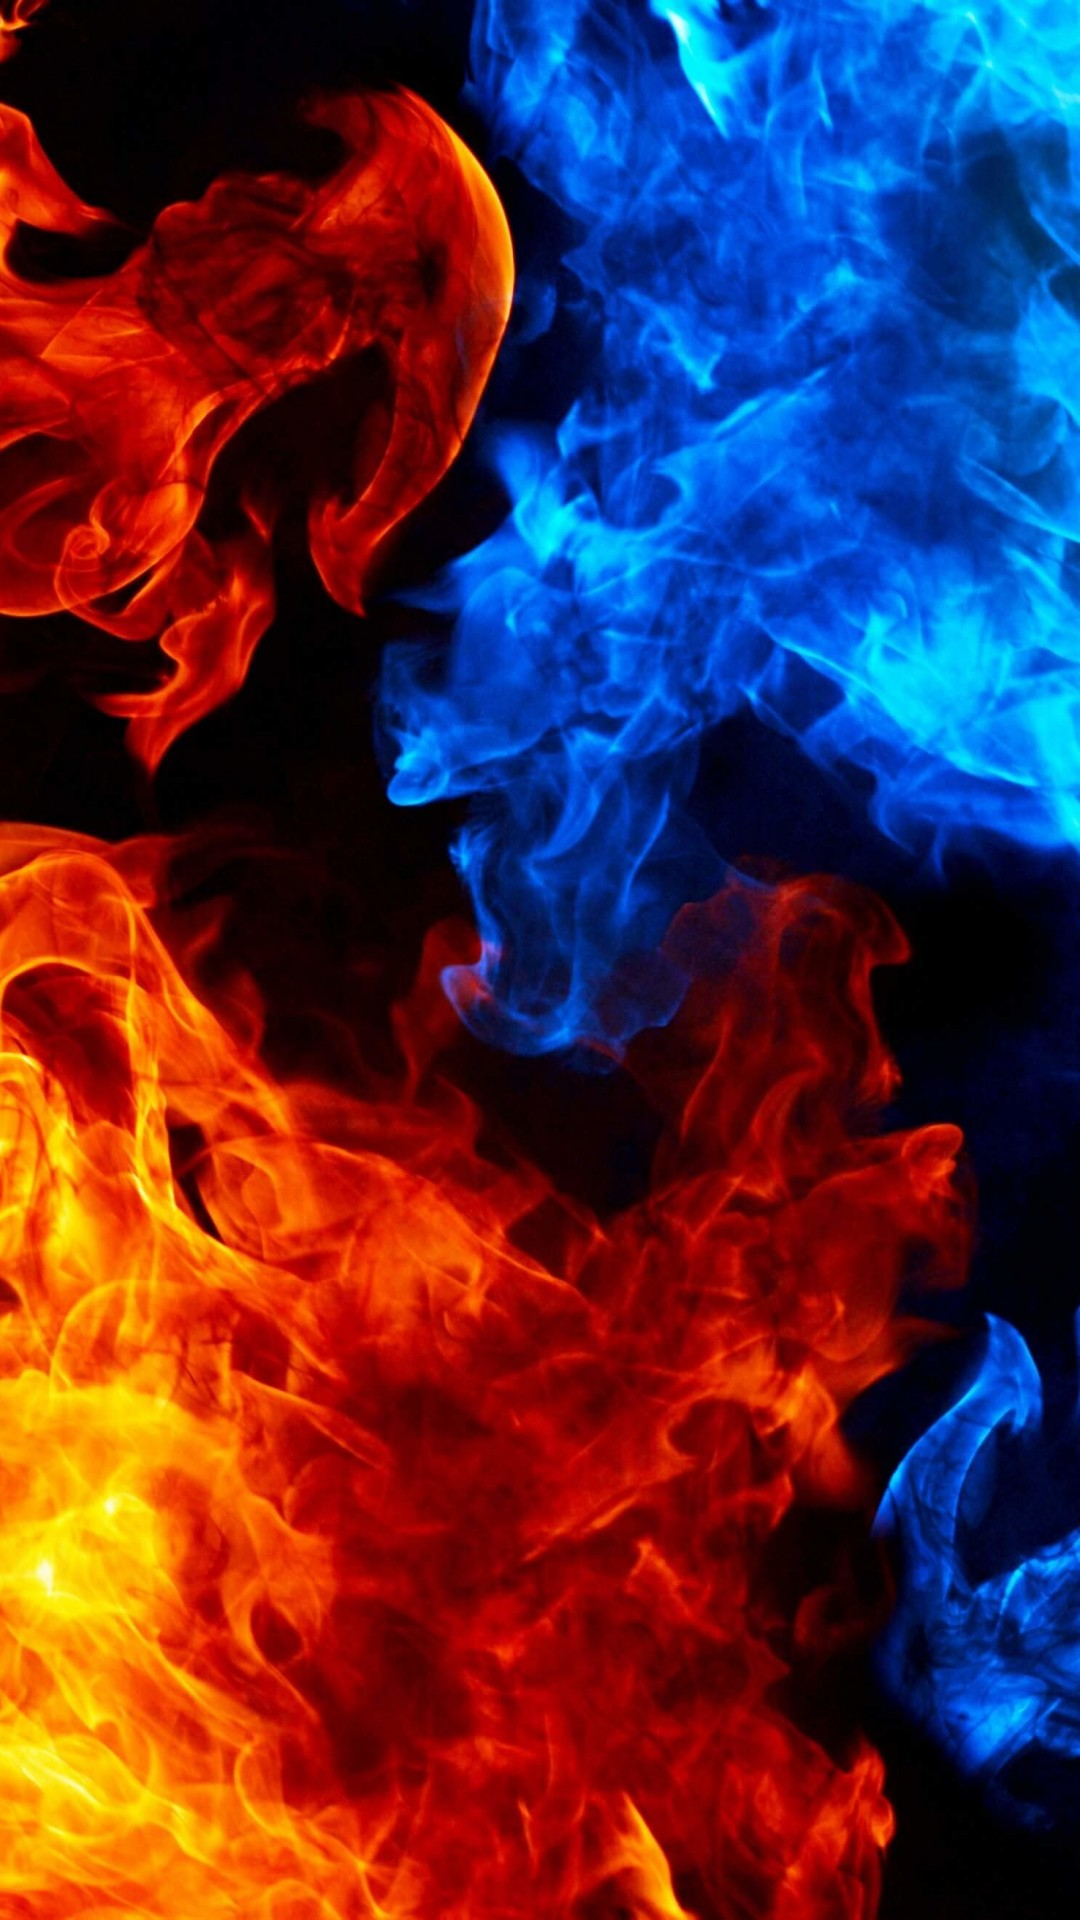 Blue And Red Fire Wallpaper for SAMSUNG Galaxy Note 3